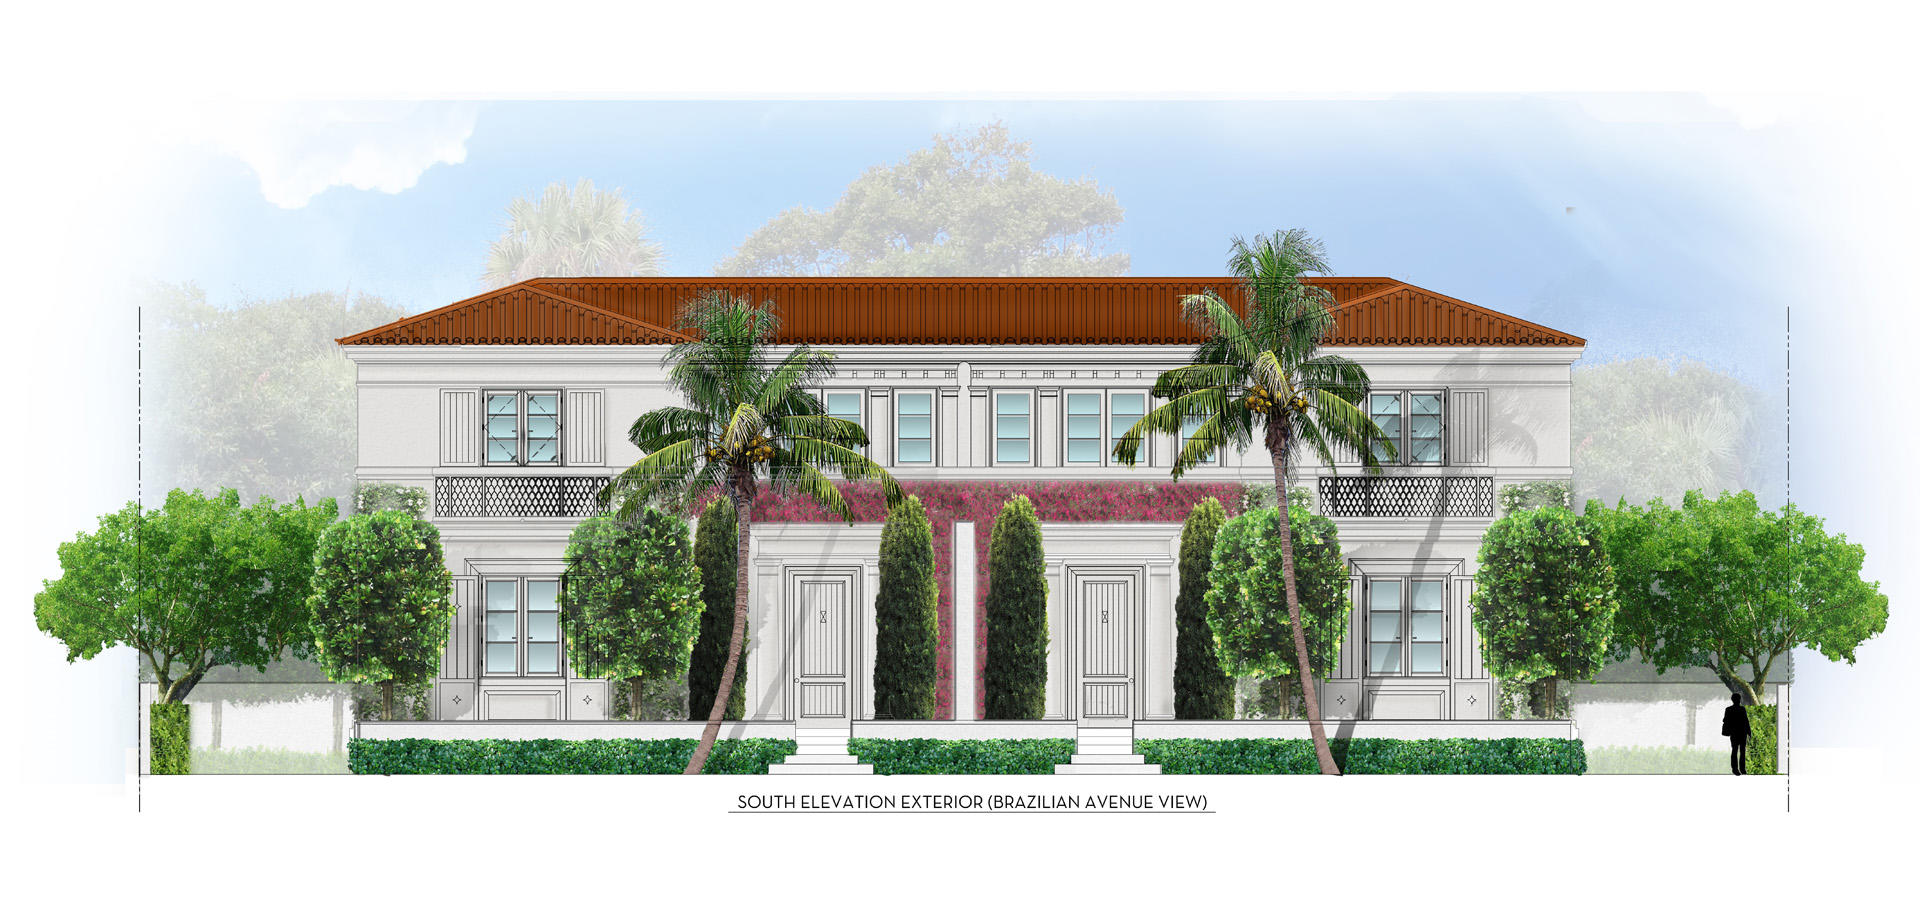 New Home for sale at 237 Brazilian Avenue in Palm Beach